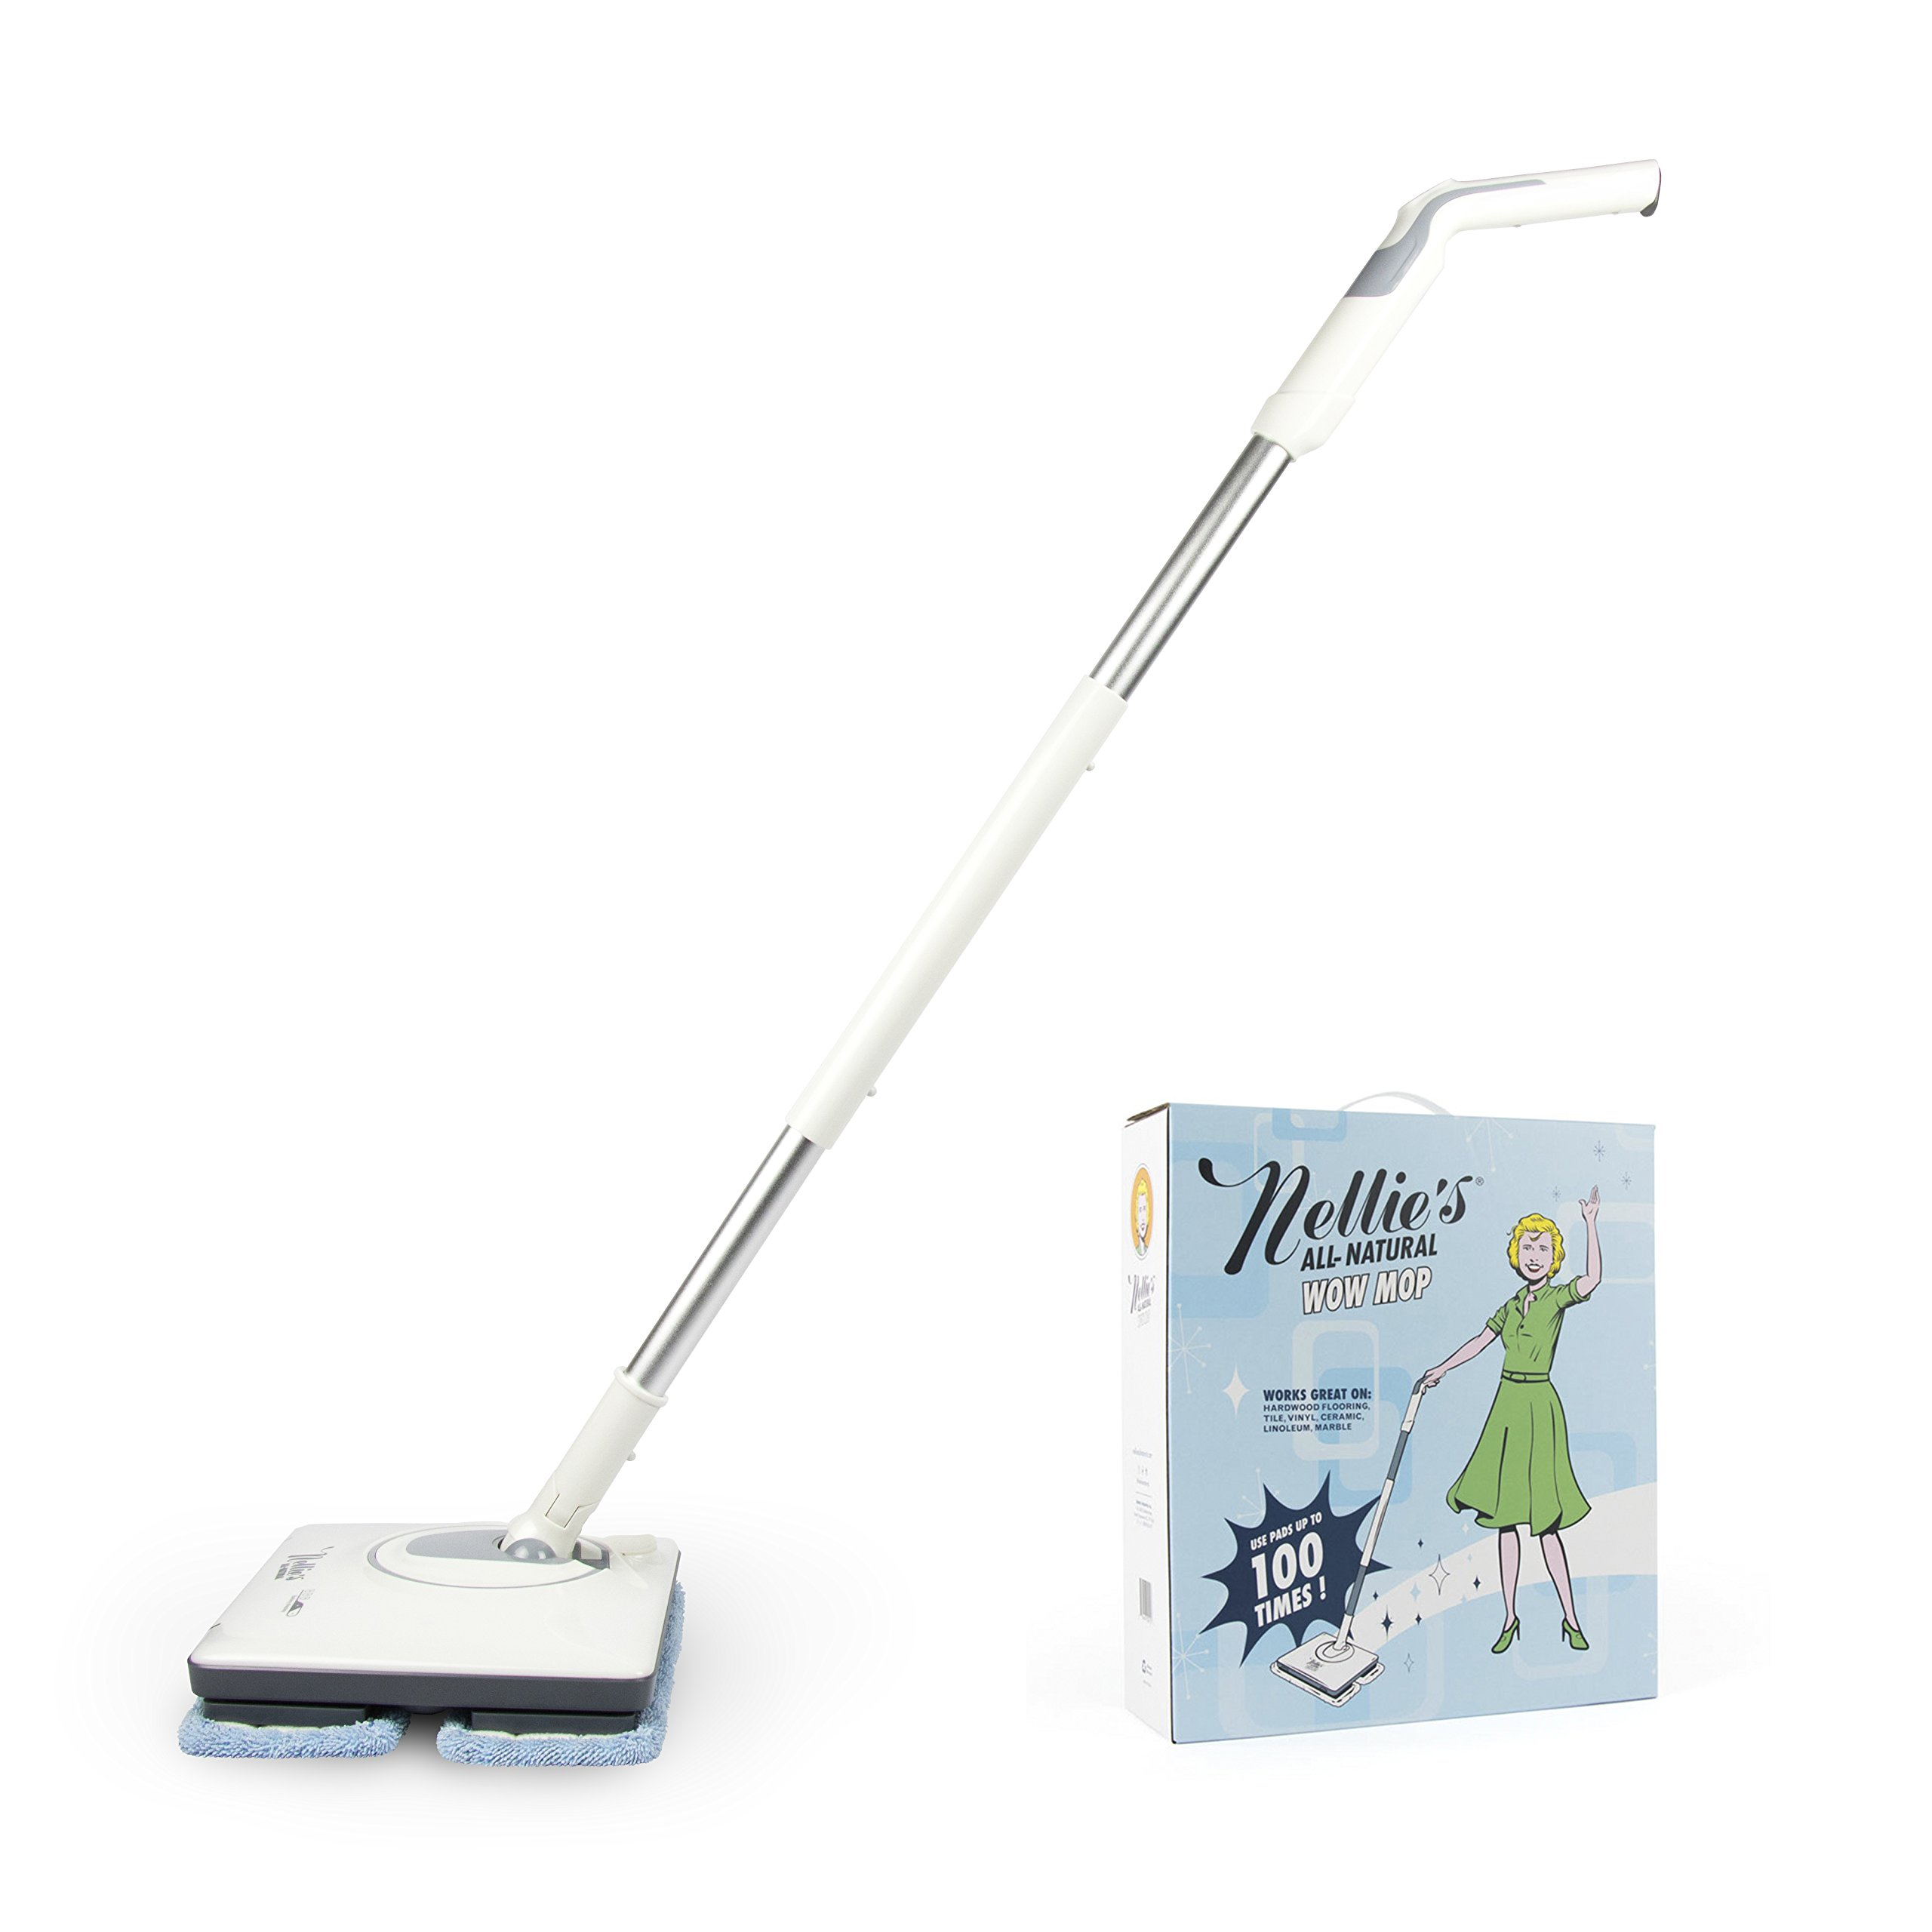 Nellie's All-Natural Wow Mop- Cordless, Light-Weight and Rechargeable